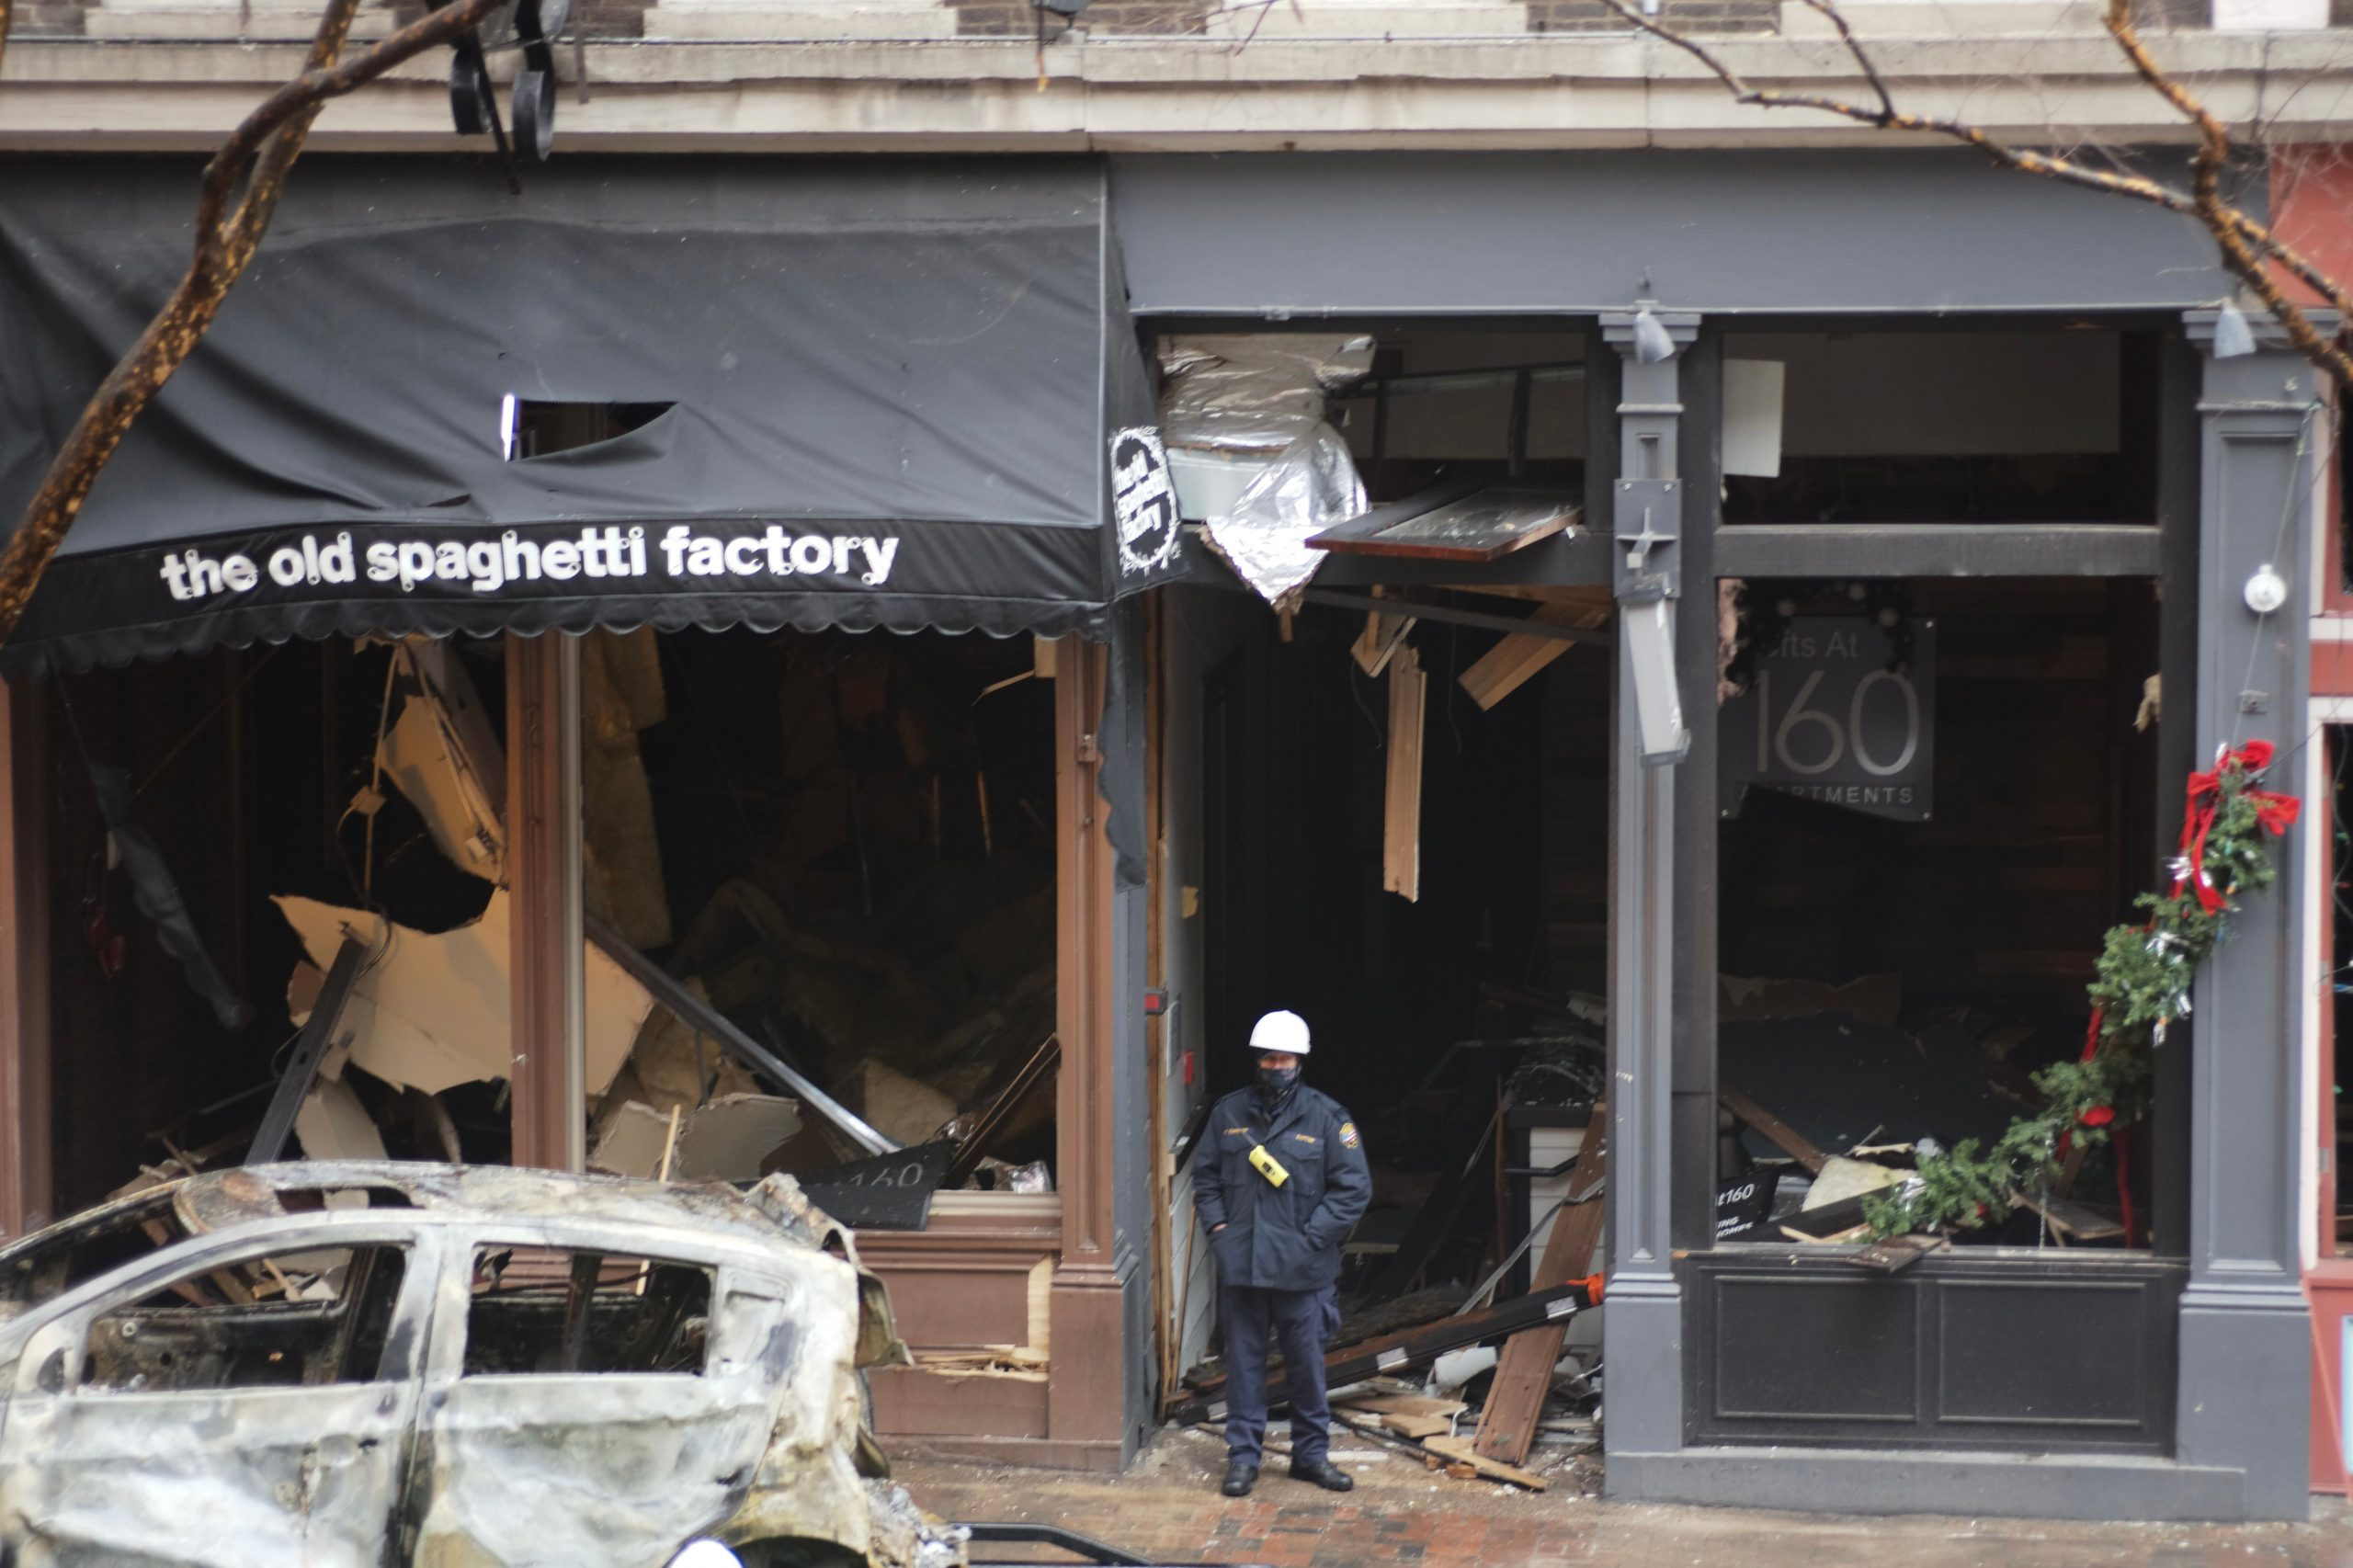 A police officer stands outside the Old Spaghetti Factory on Nashville's Second Avenue on Dec. 31. The restaurant, which opened in 1980, was near the epicenter of the bomb blast. (Photo: Ray Di Pietro)